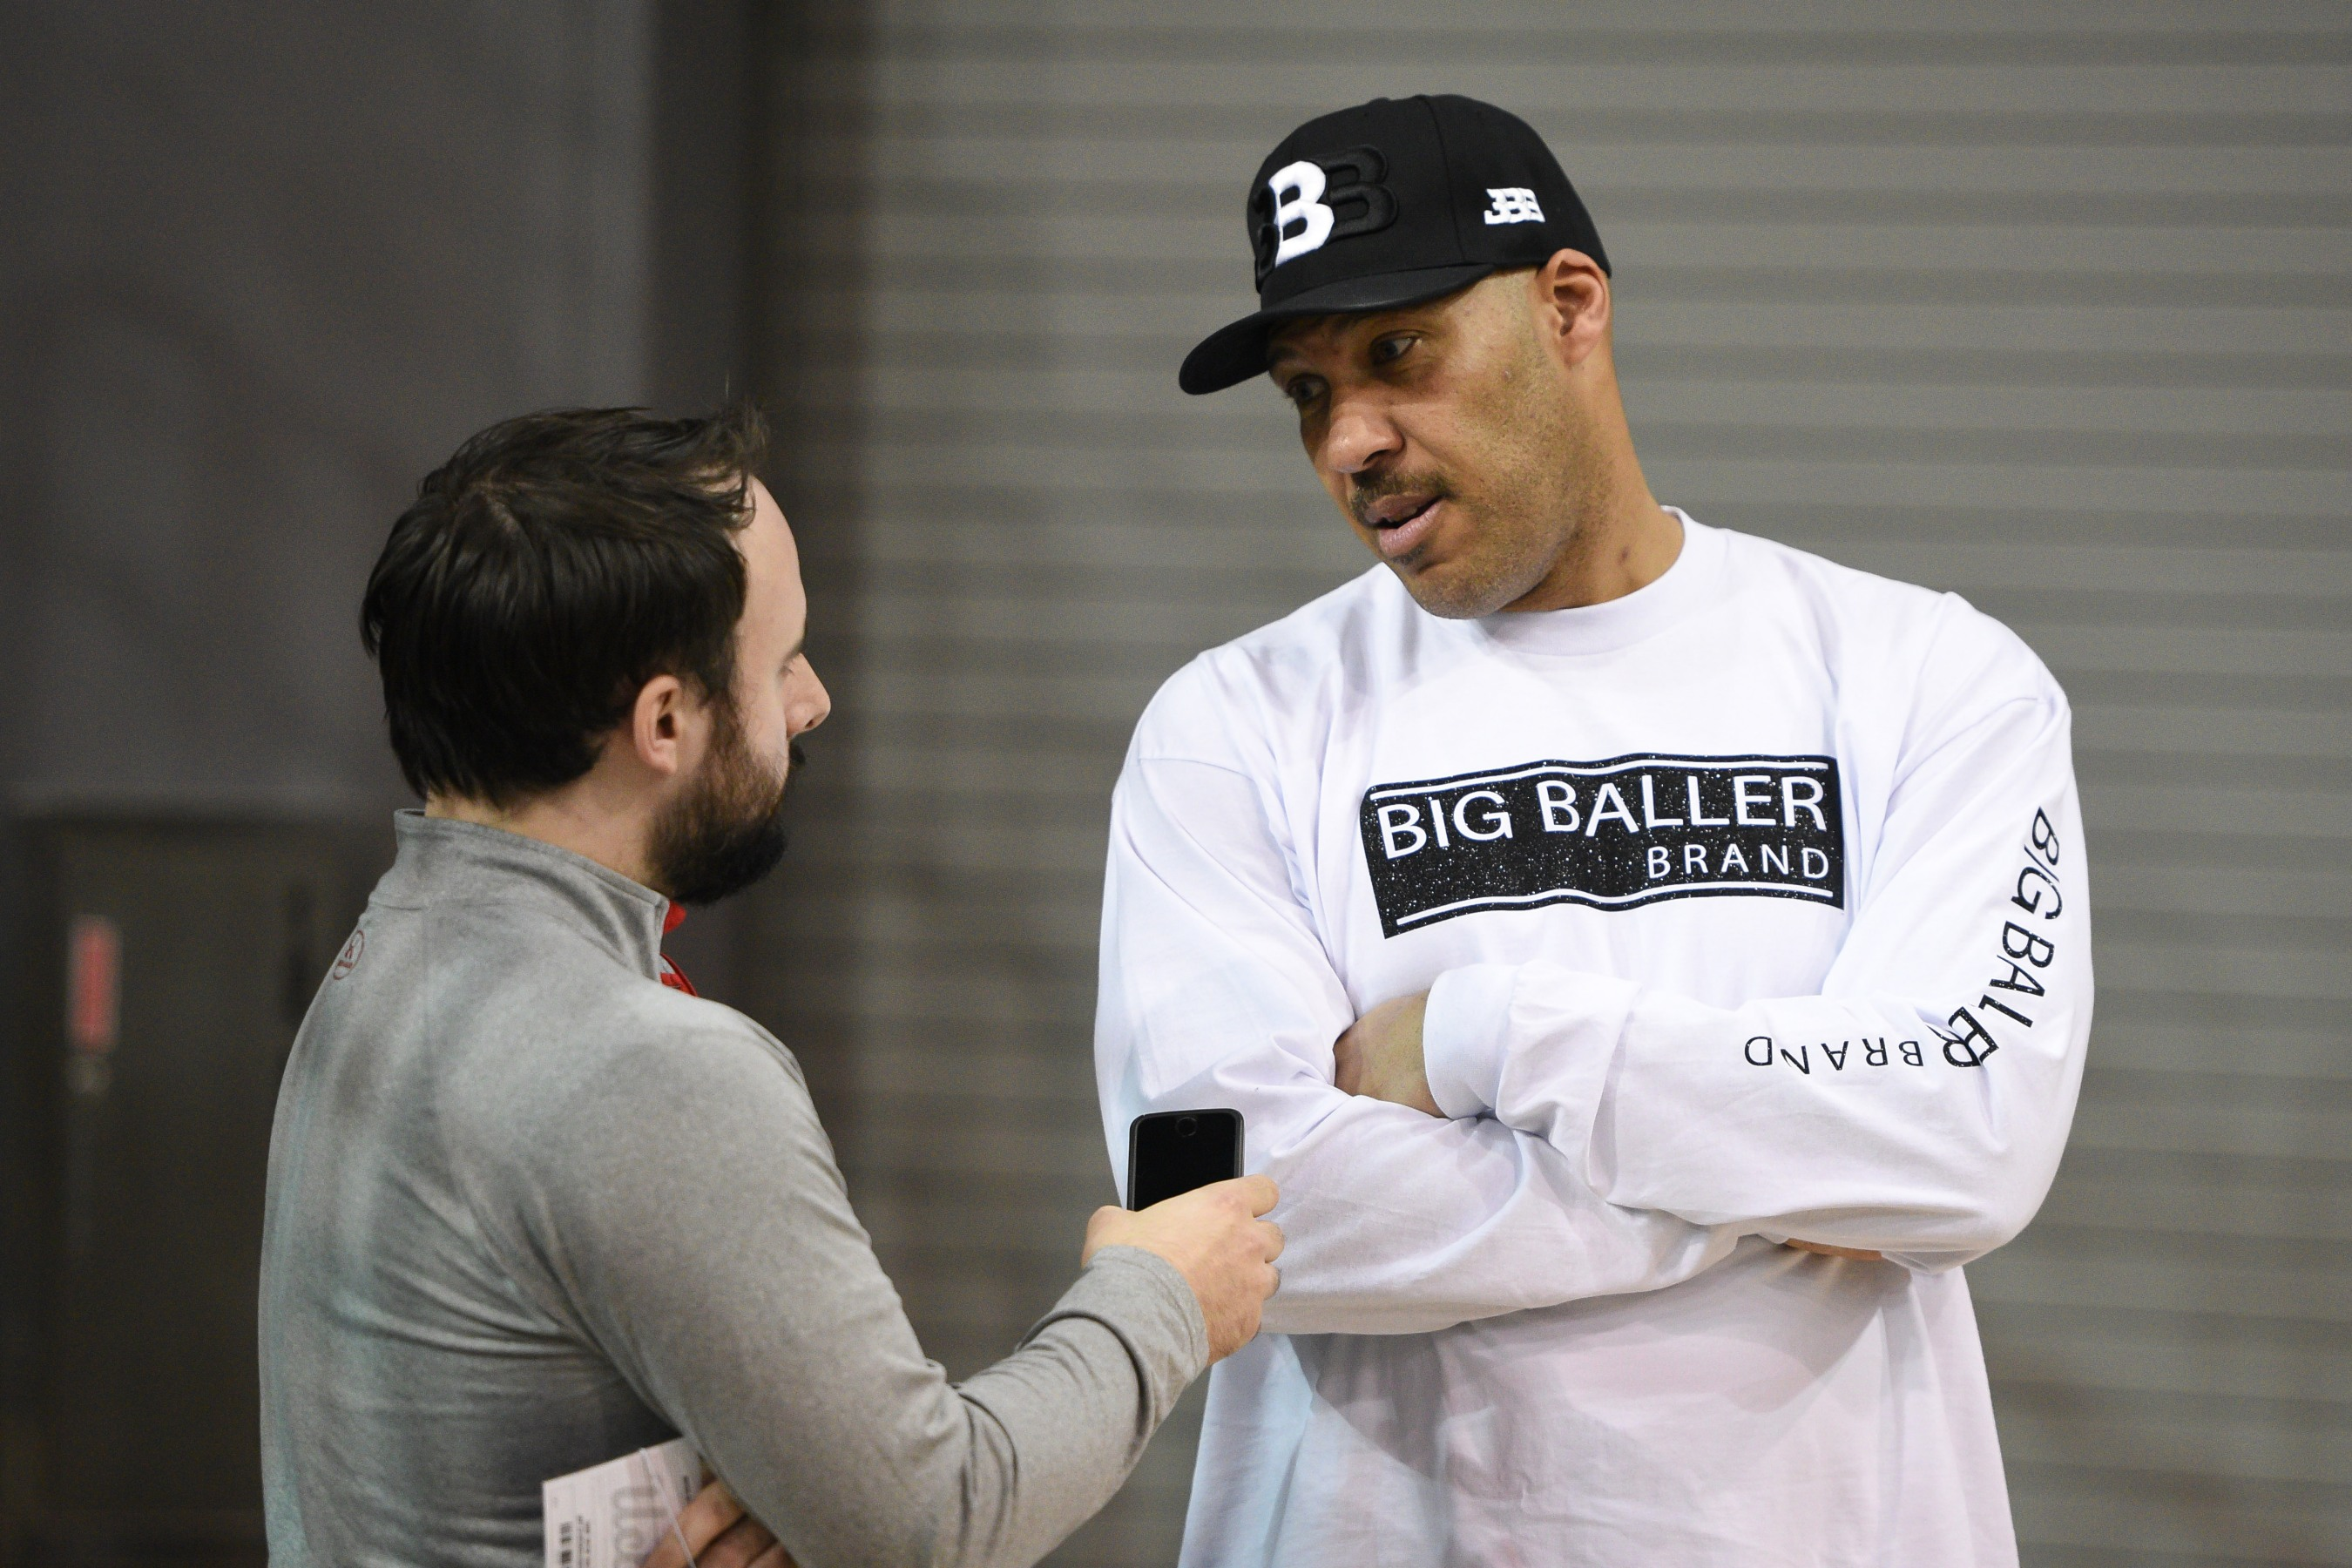 LaVar Ball s business plan for Big Baller is just as audacious as Nike s  Jordan strategy 3e6848871